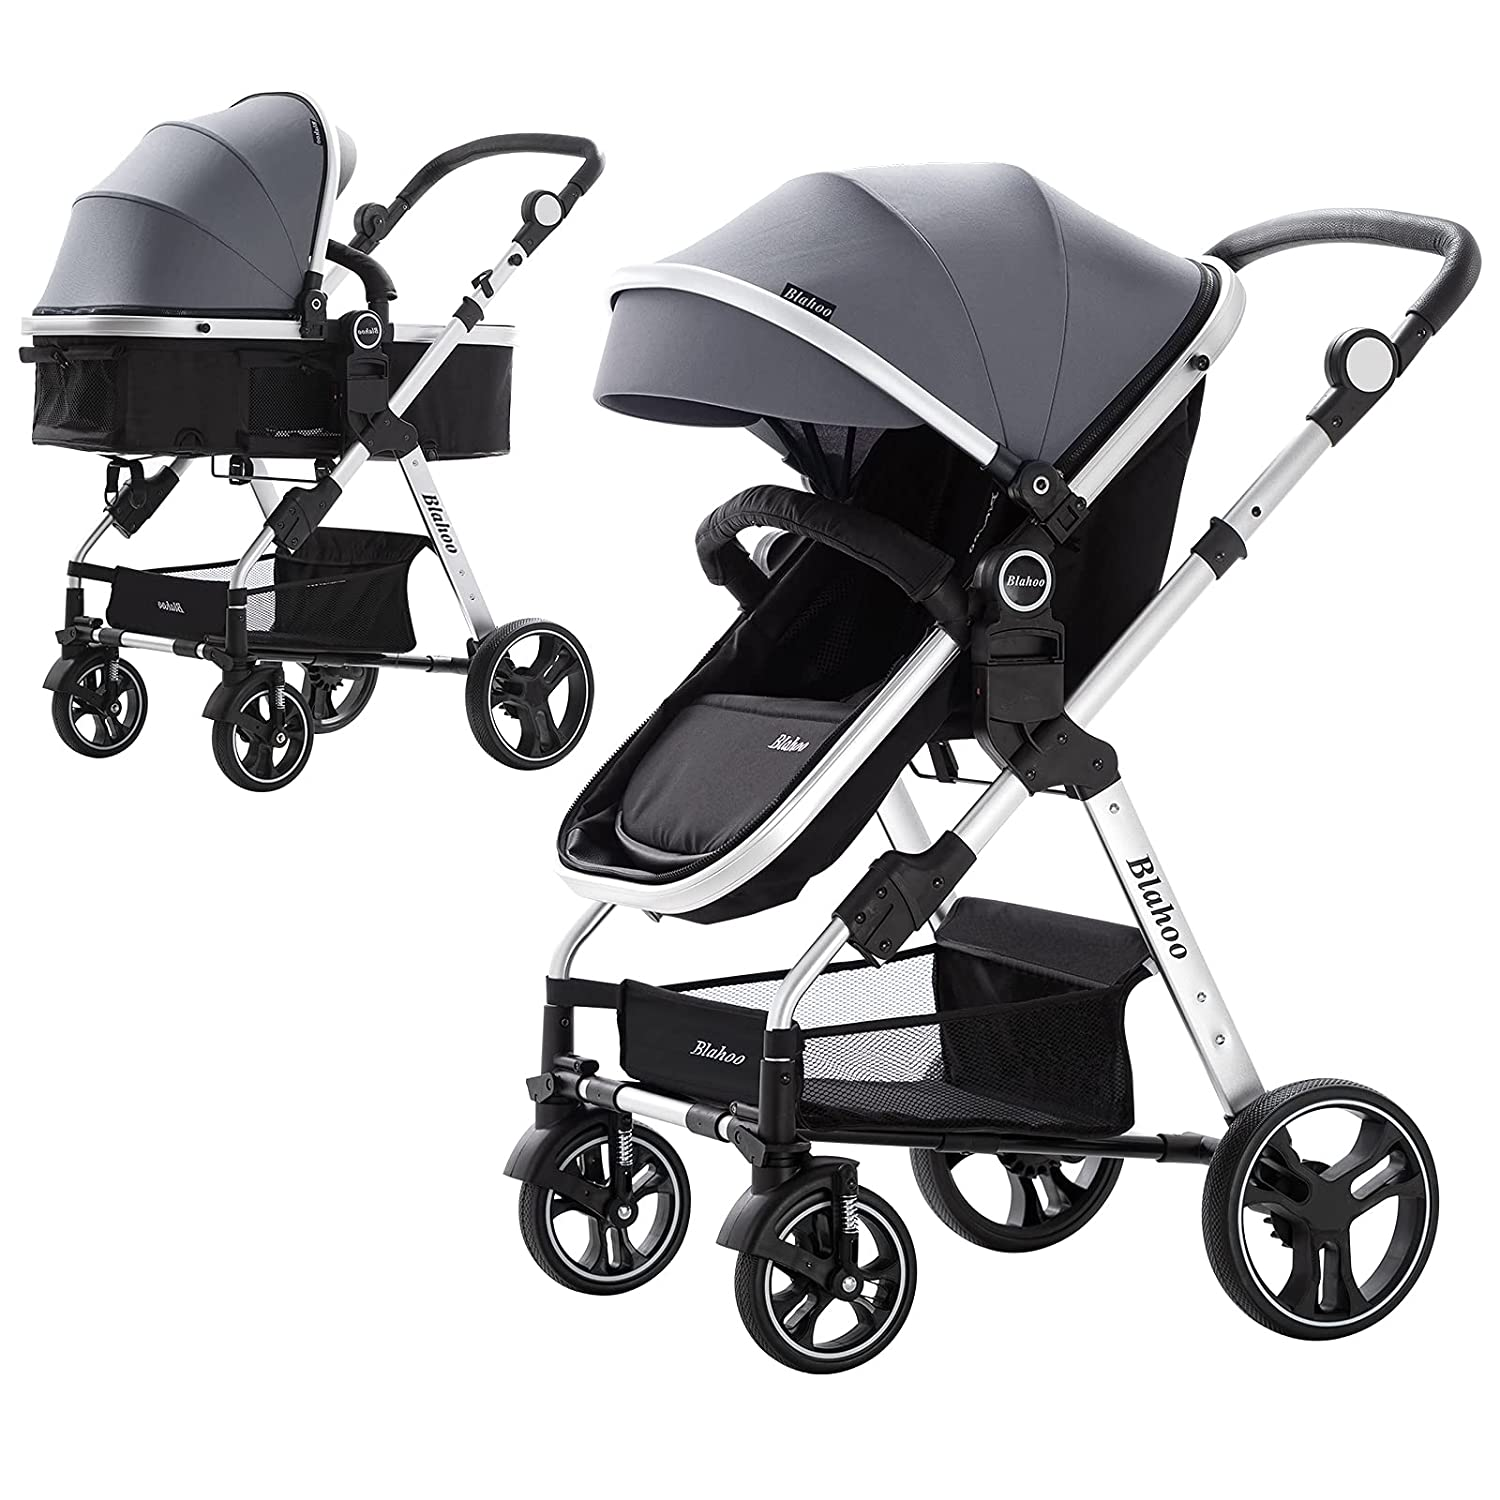 Blahoo Baby Stroller for Toddler .Foldable Aluminum Alloy Pushchair with Adjustable Backrest.Strollers Add Stroller Cover, Cup Holder, Net (Grey)